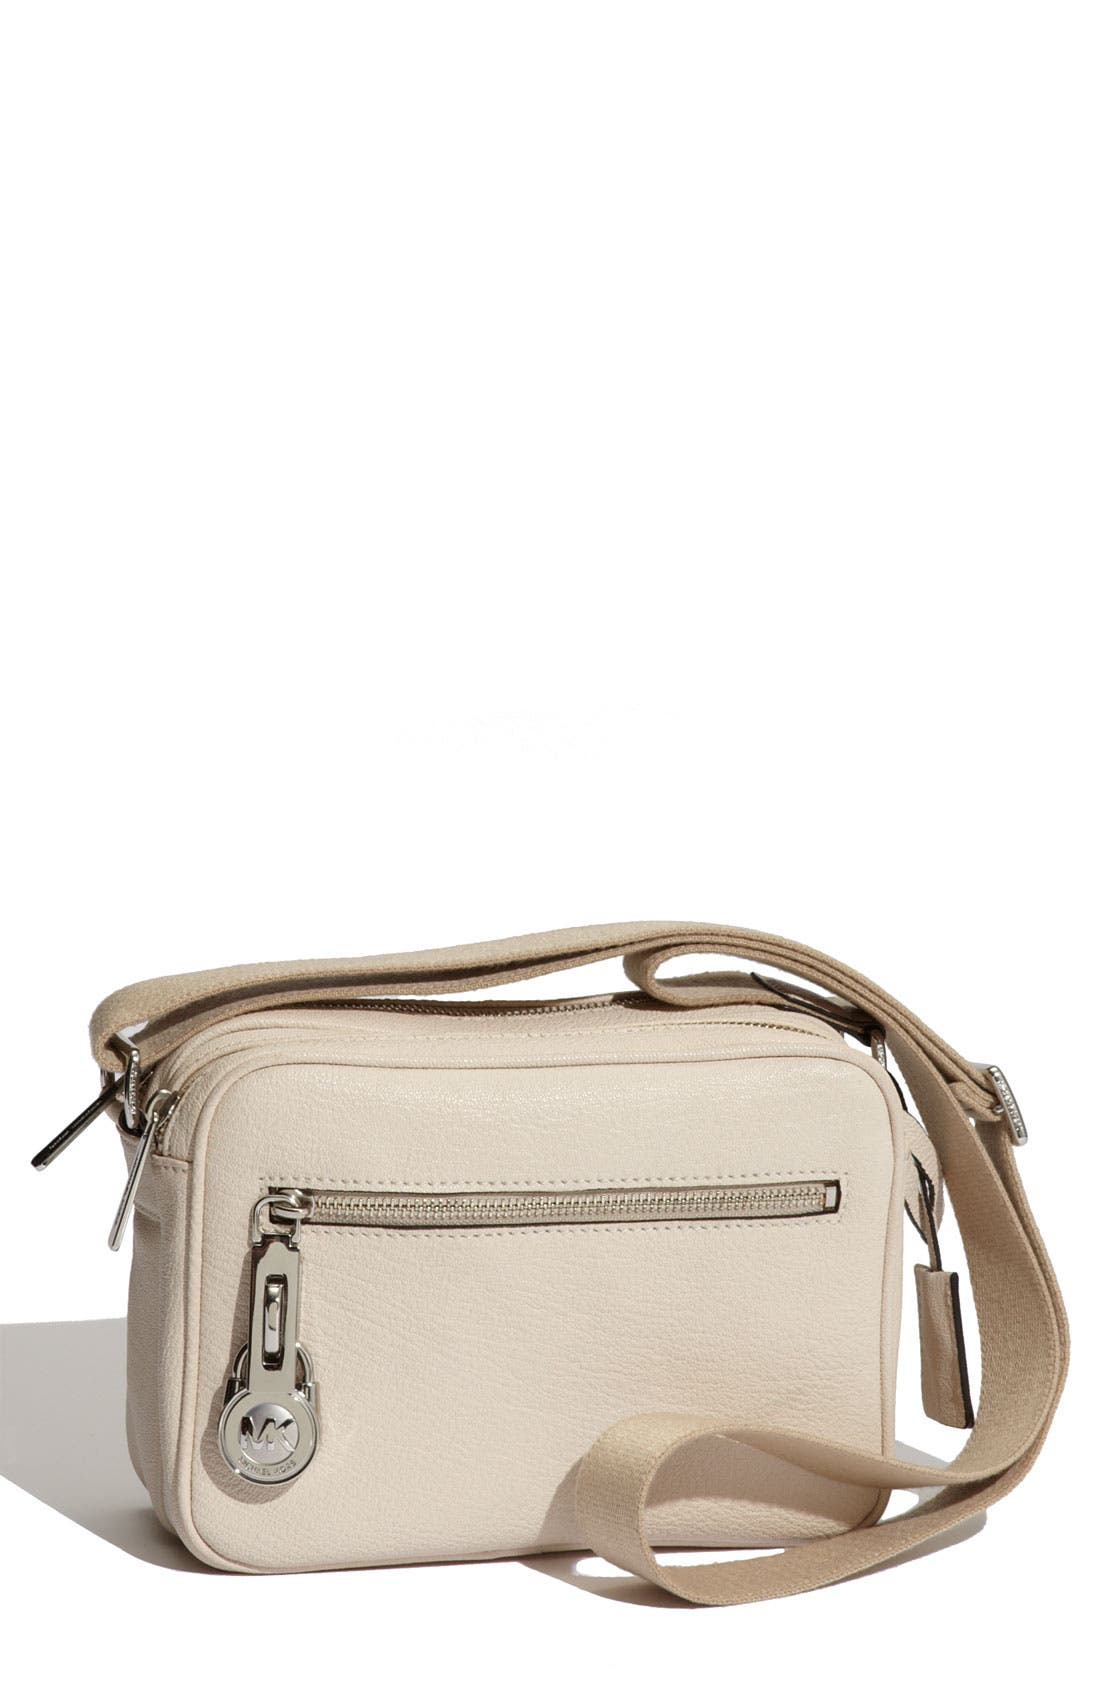 Main Image - MICHAEL Michael Kors 'Flight' Crossbody Bag